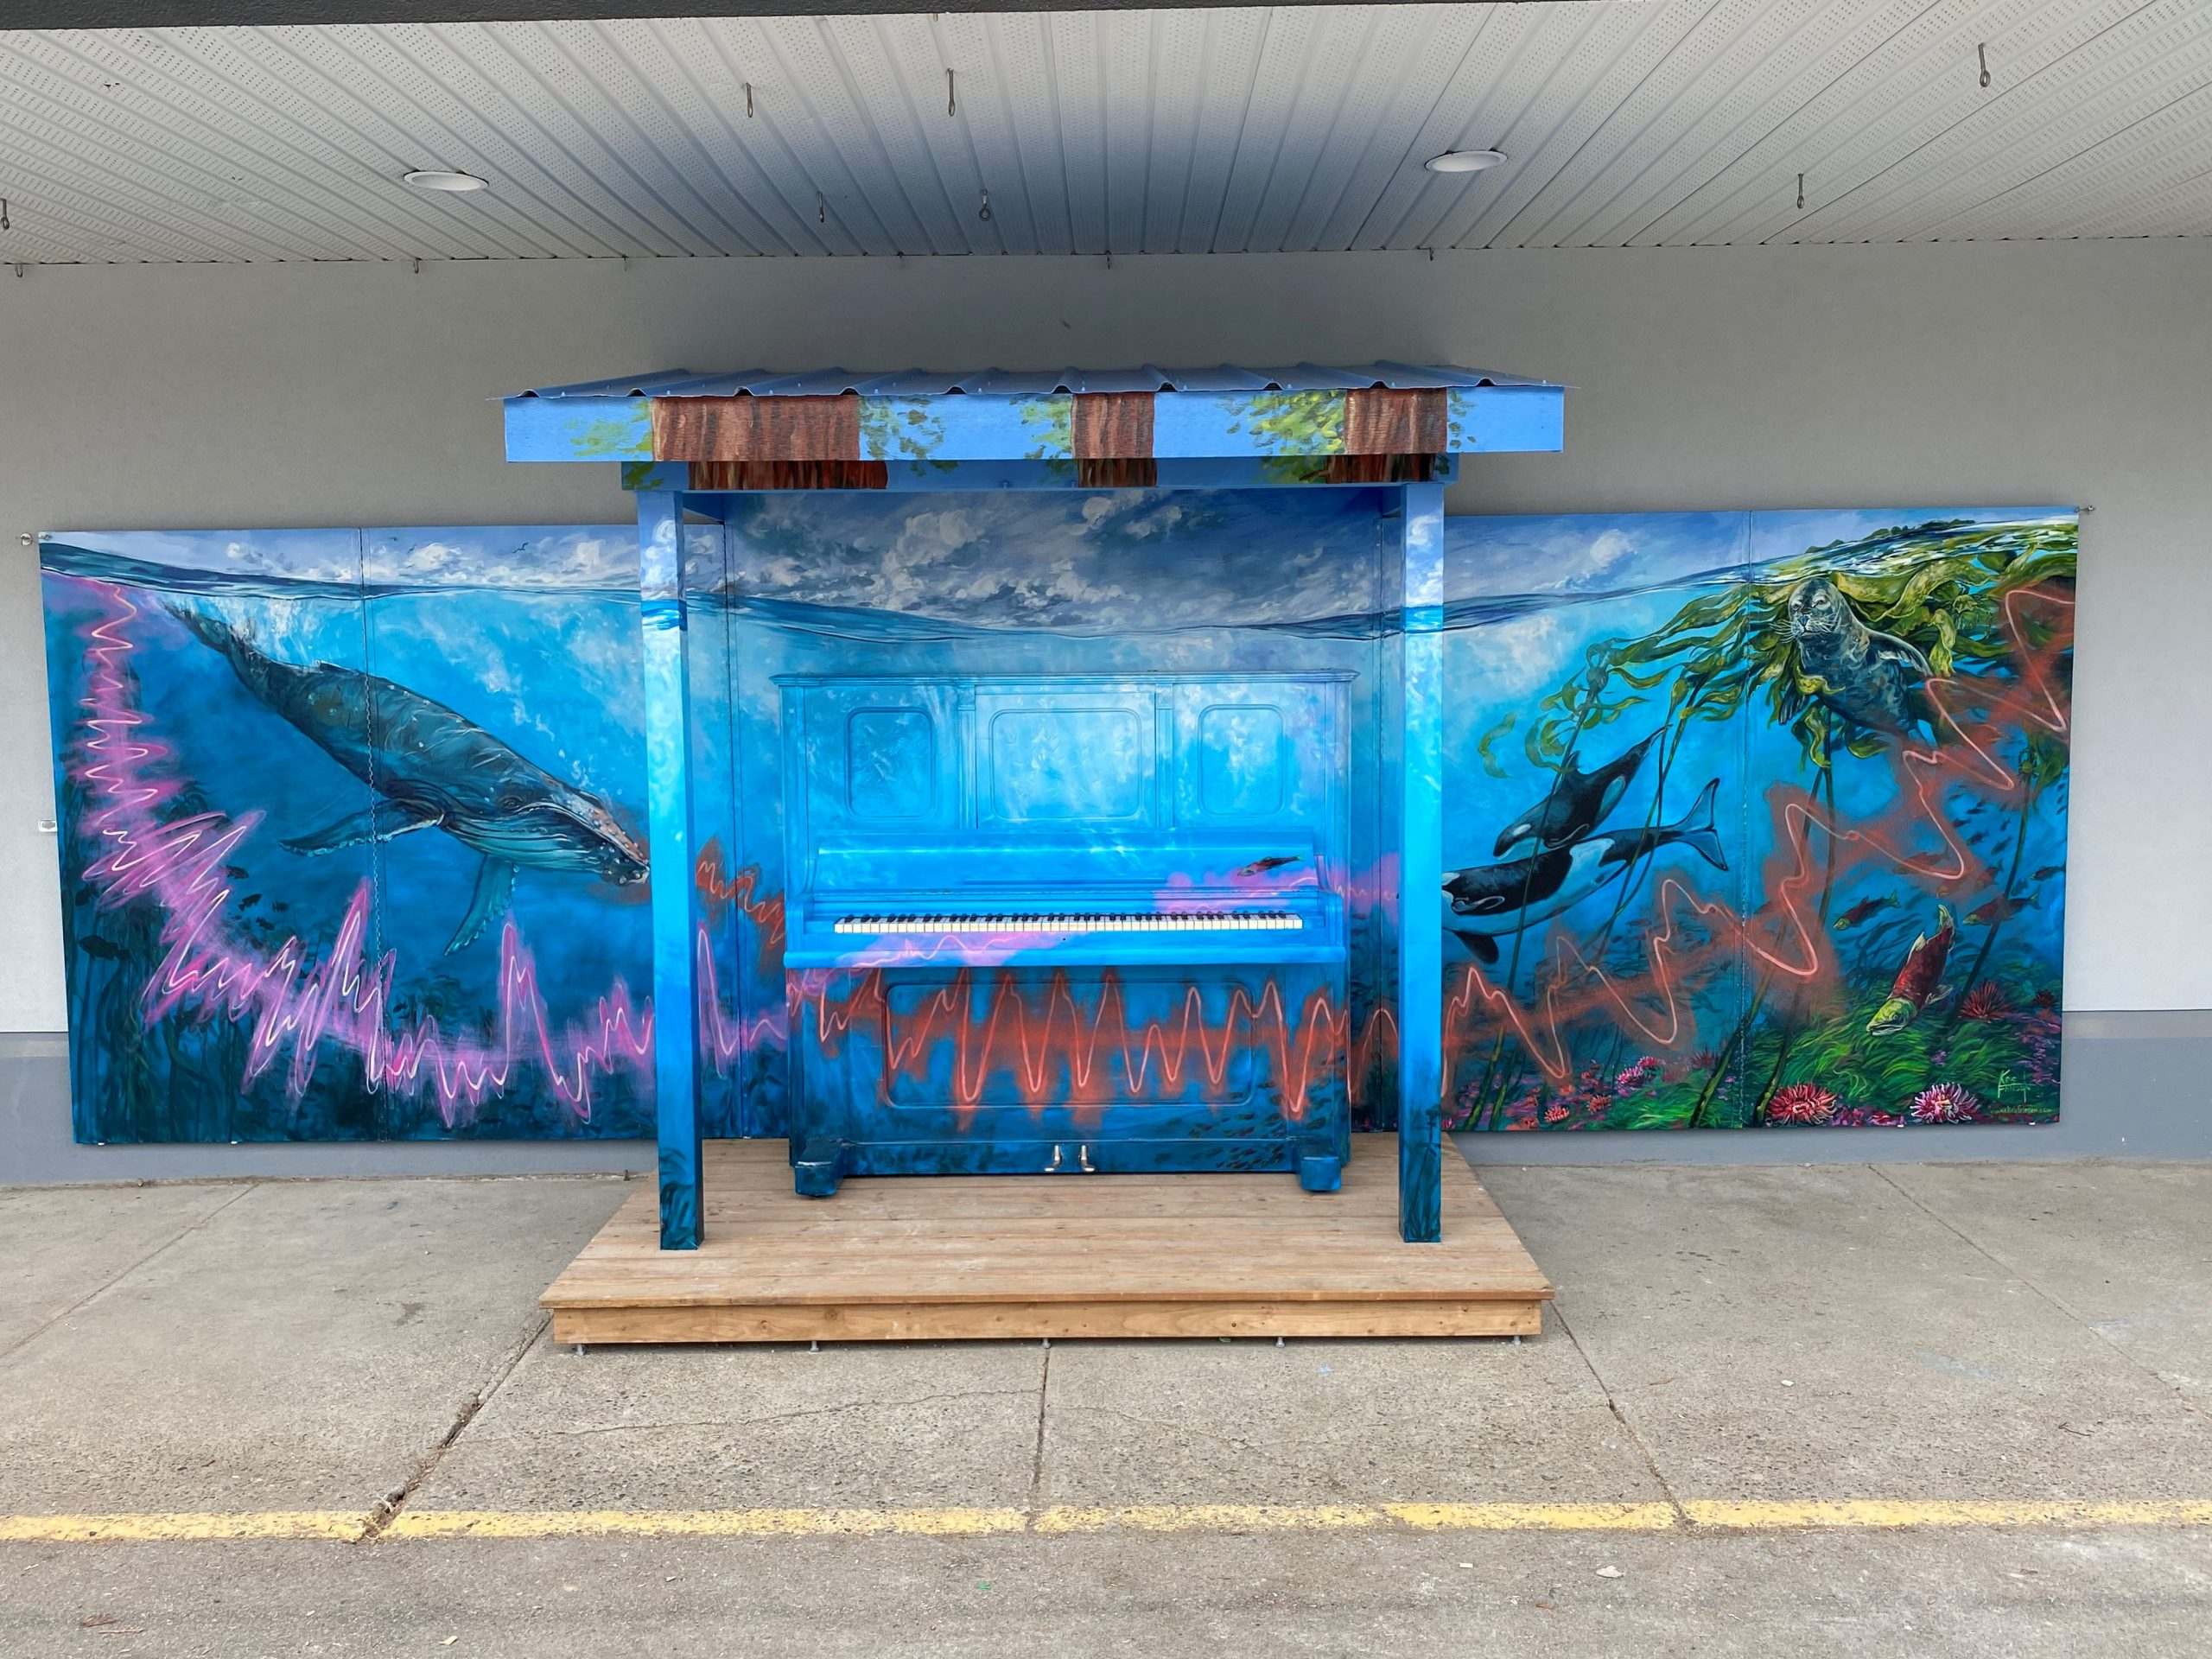 Opening the enclosure reveals the panoramic underwater ocean scene and the public street piano.